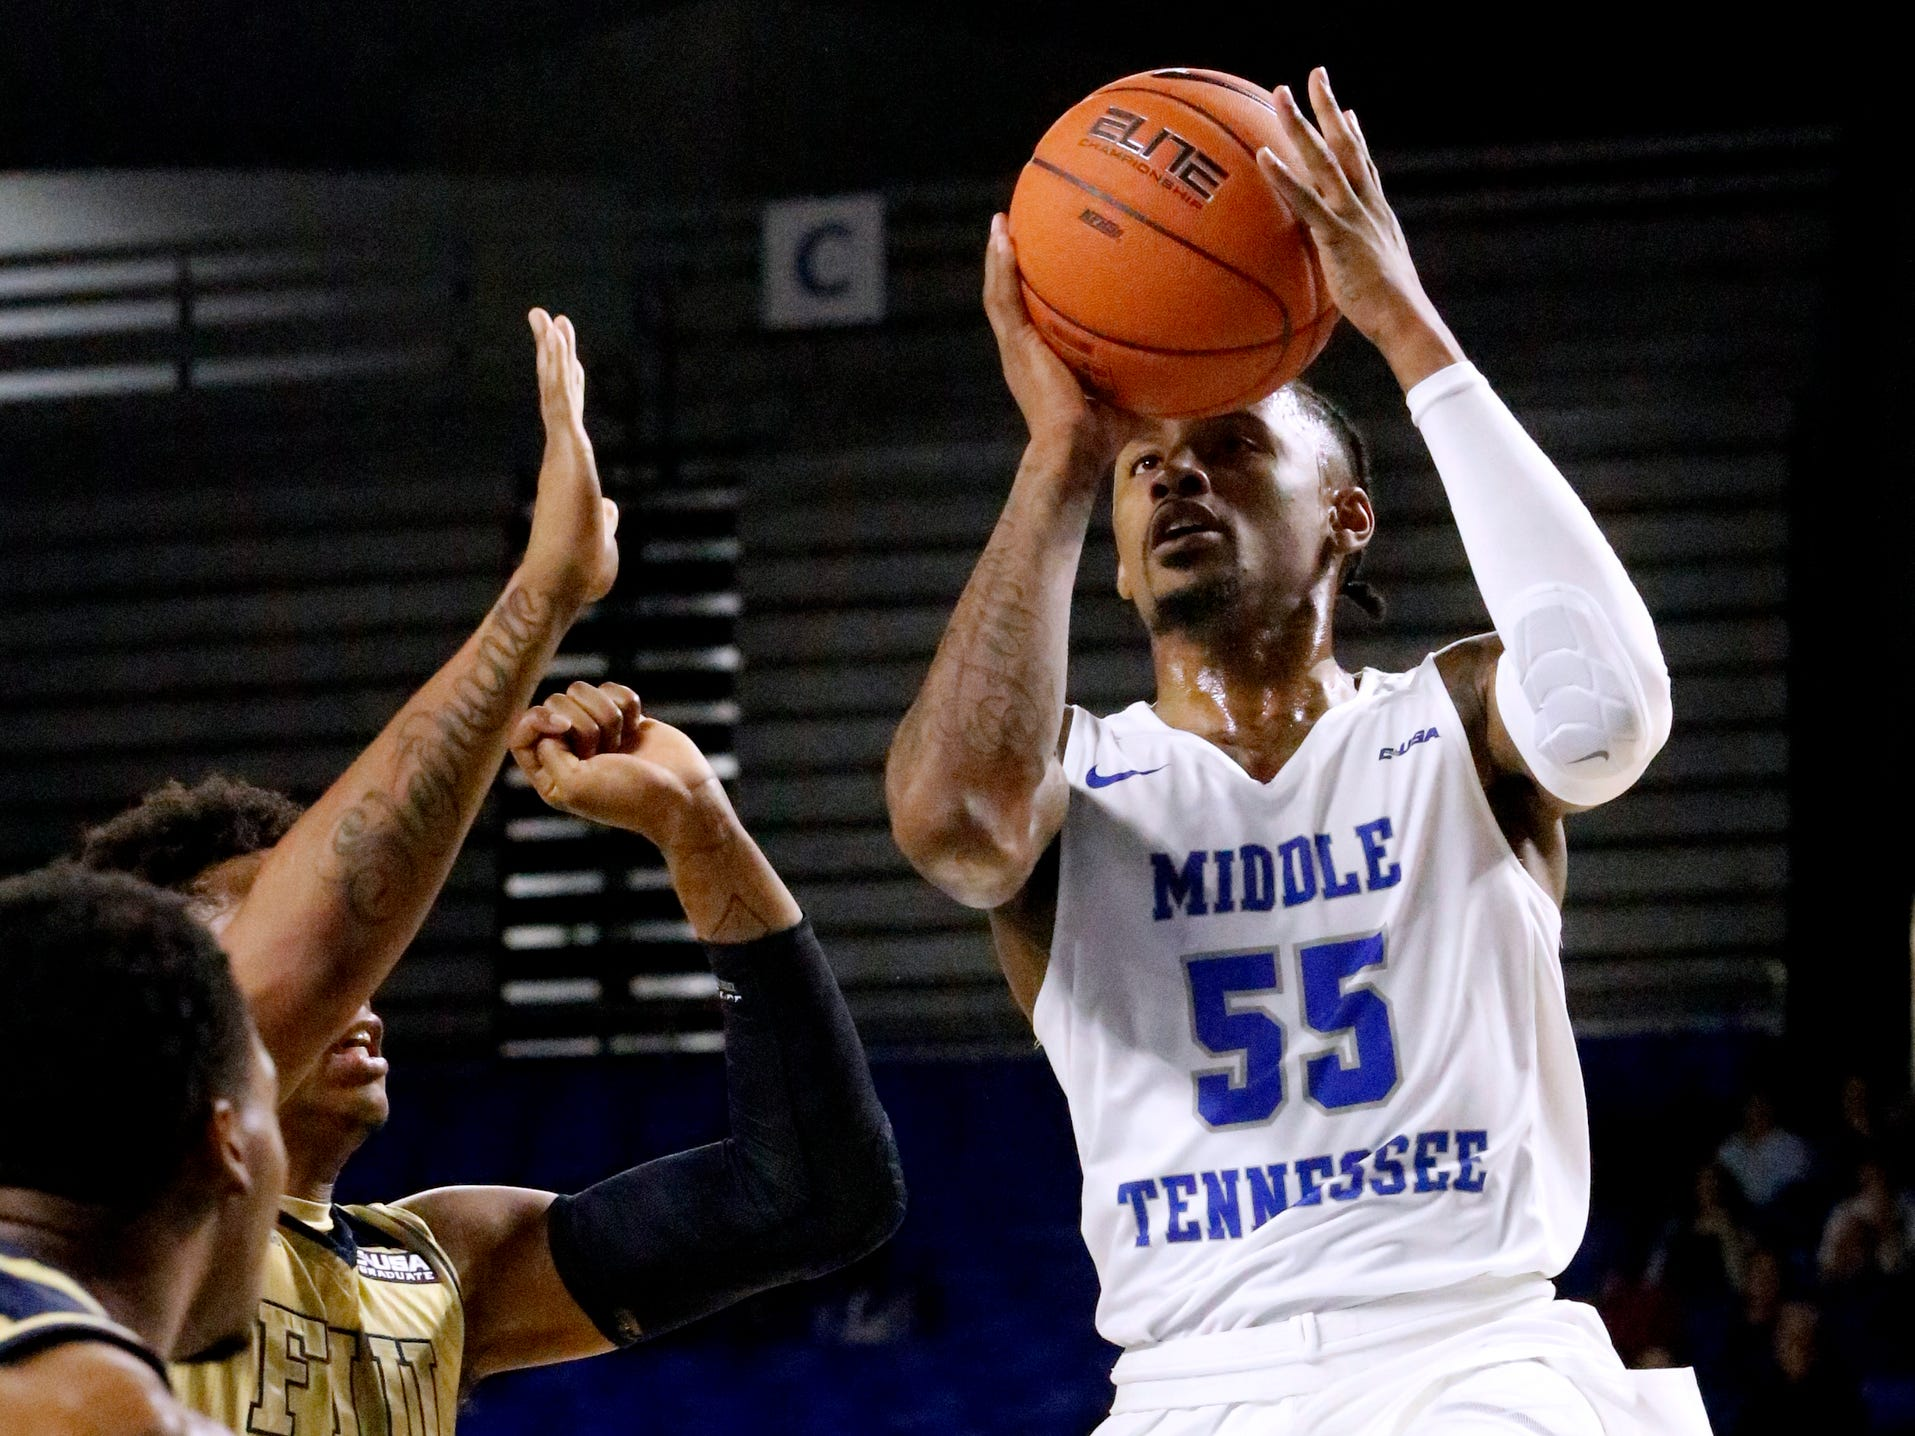 MTSU's guard Antonio Green (55) goes up for a shot as FIU's forward Michael Douglas (31) guards him on Thursday Jan. 3, 2019, at MTSU.